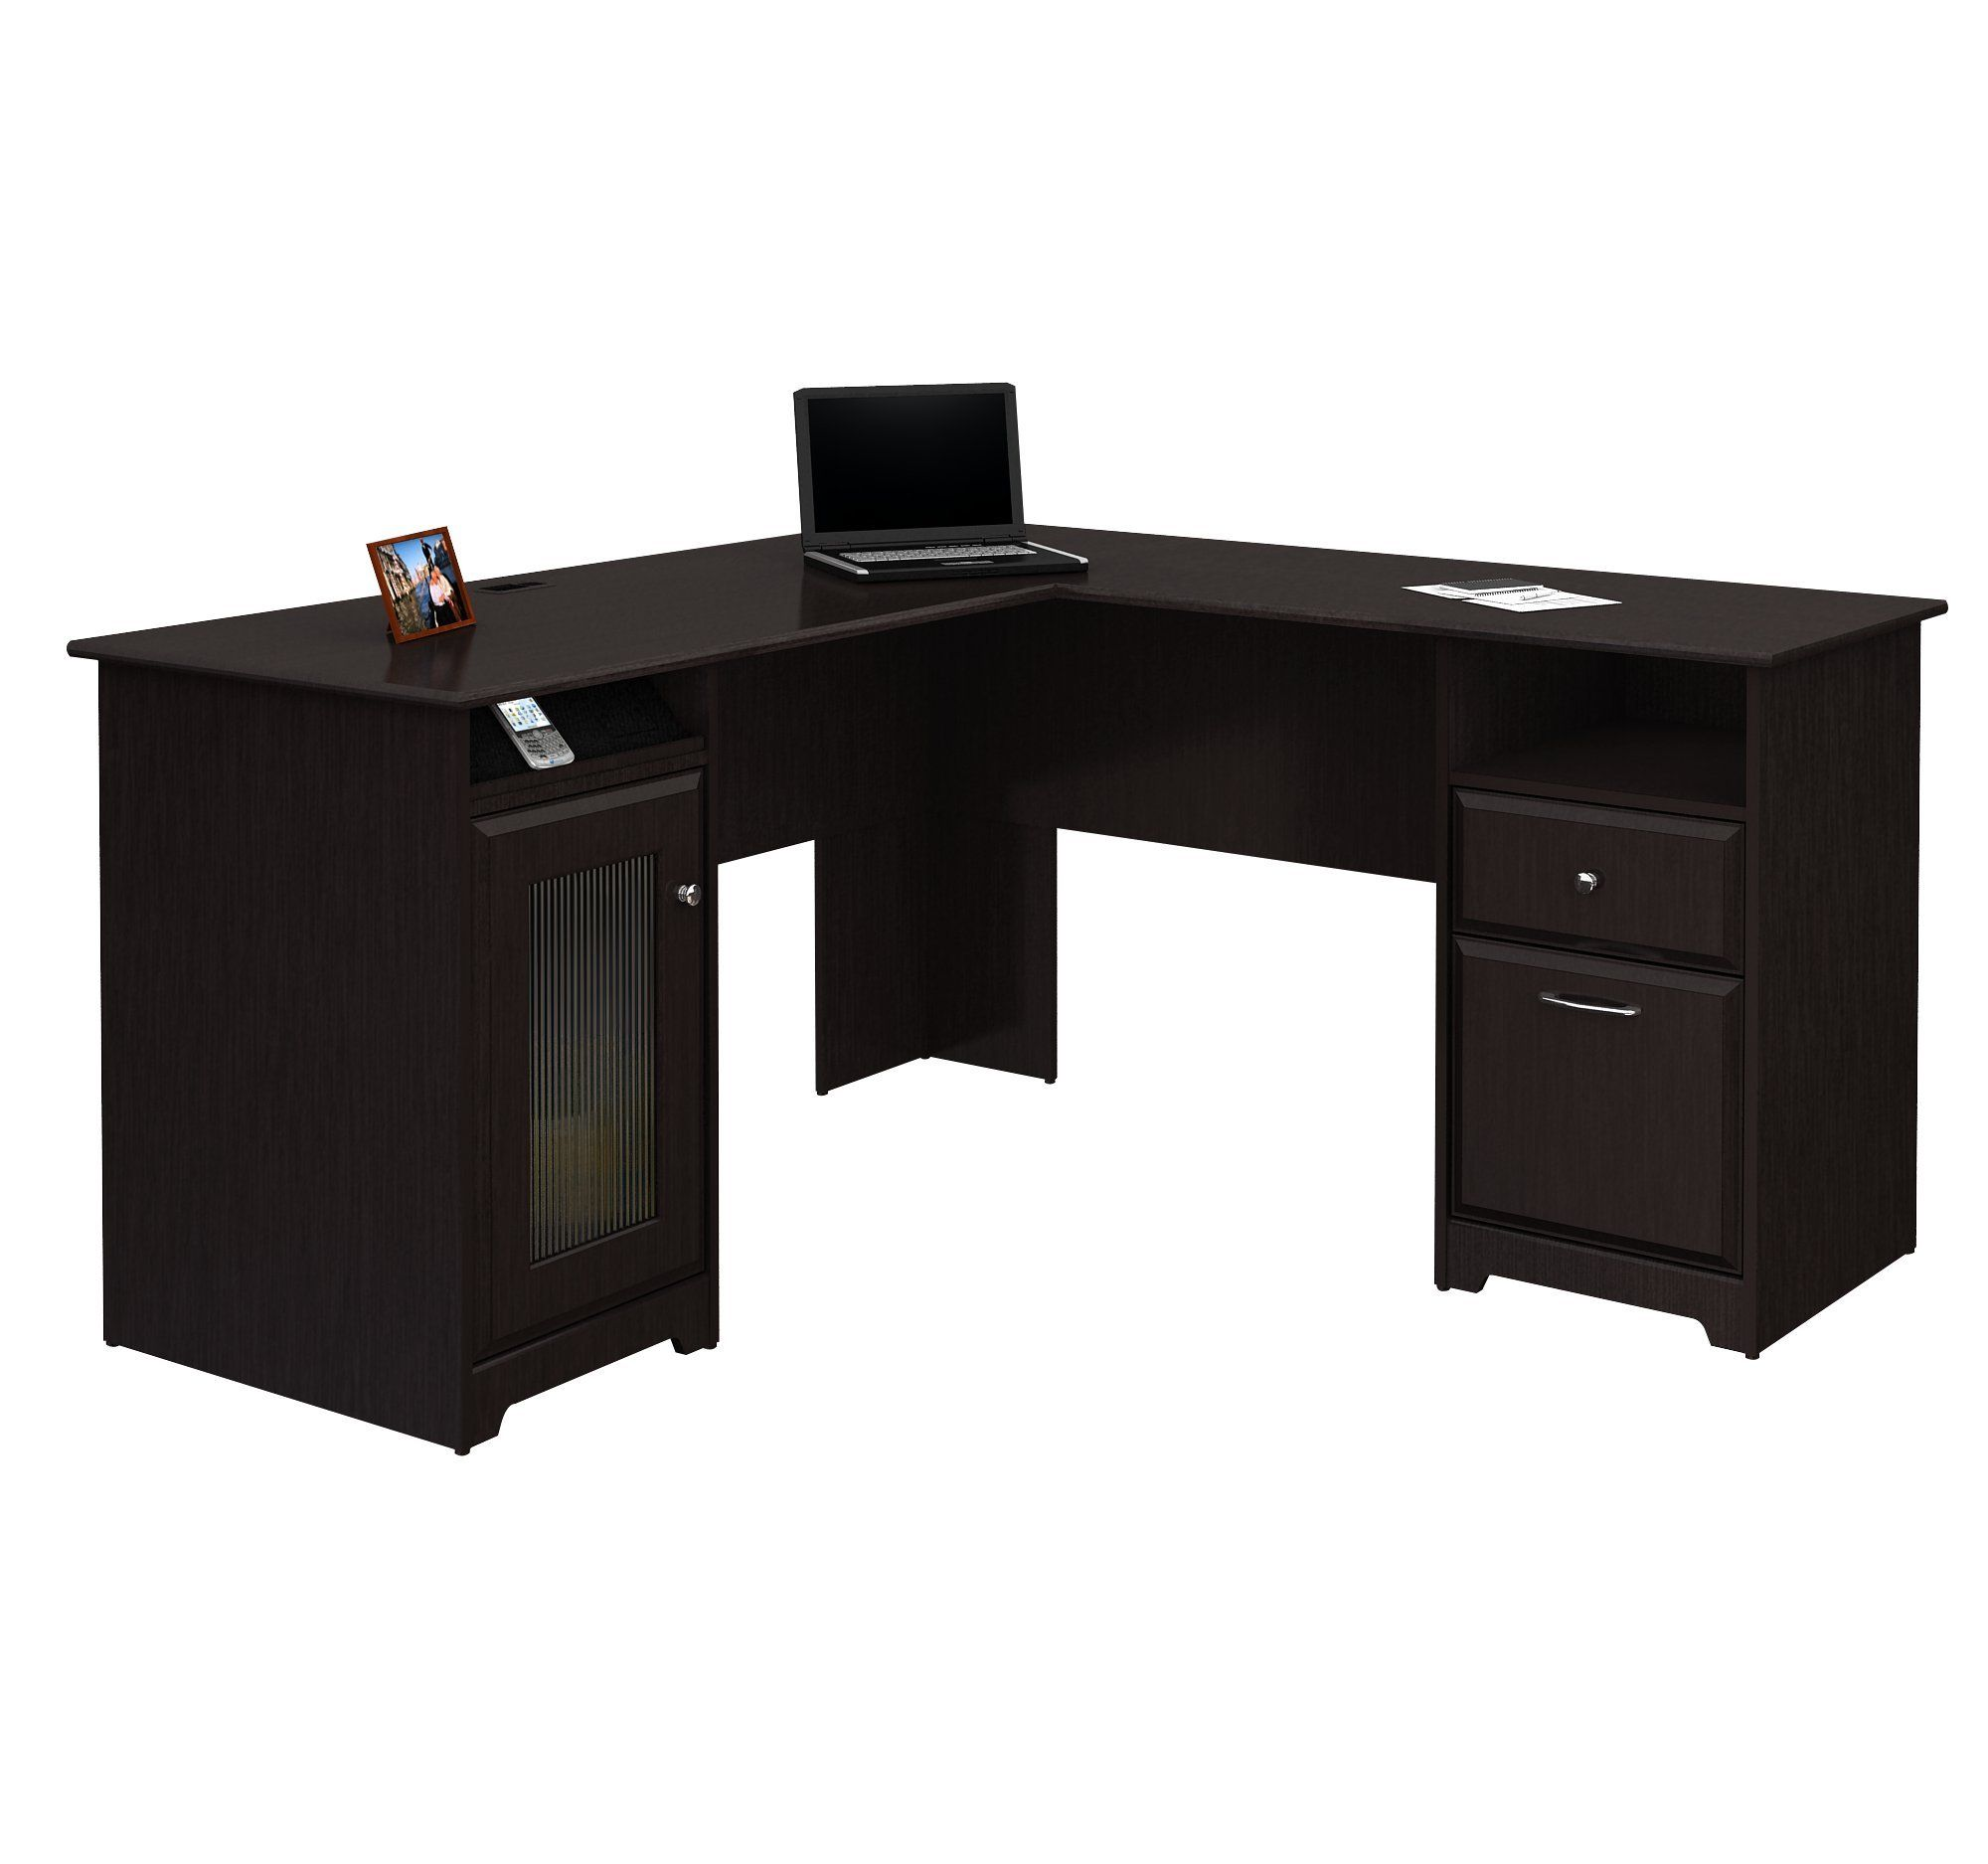 Amazon.com   BUSH FURNITURE Bush Furniture Harvest Espresso OakCabot  Collection 60 Inch. Home Office DesksHome ...